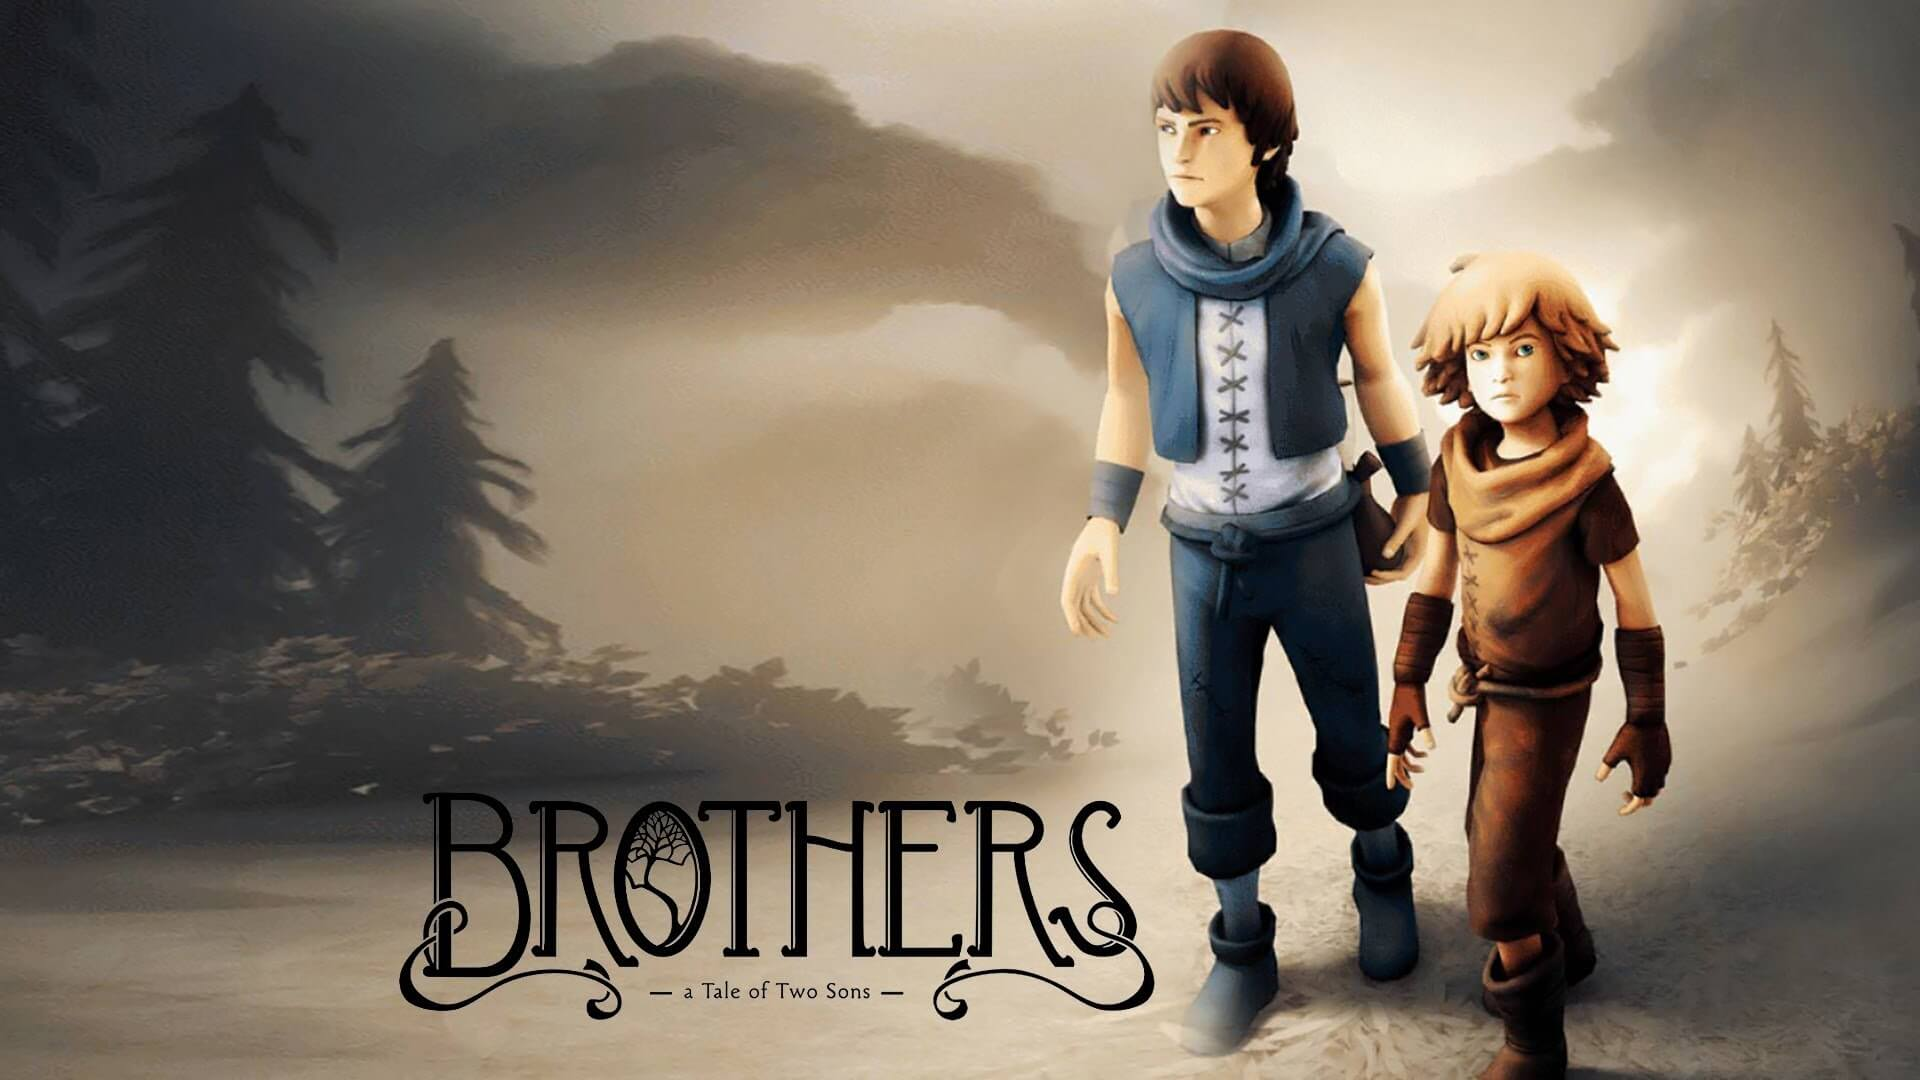 Brothers – A Tale of Two Sons のボックスアート。